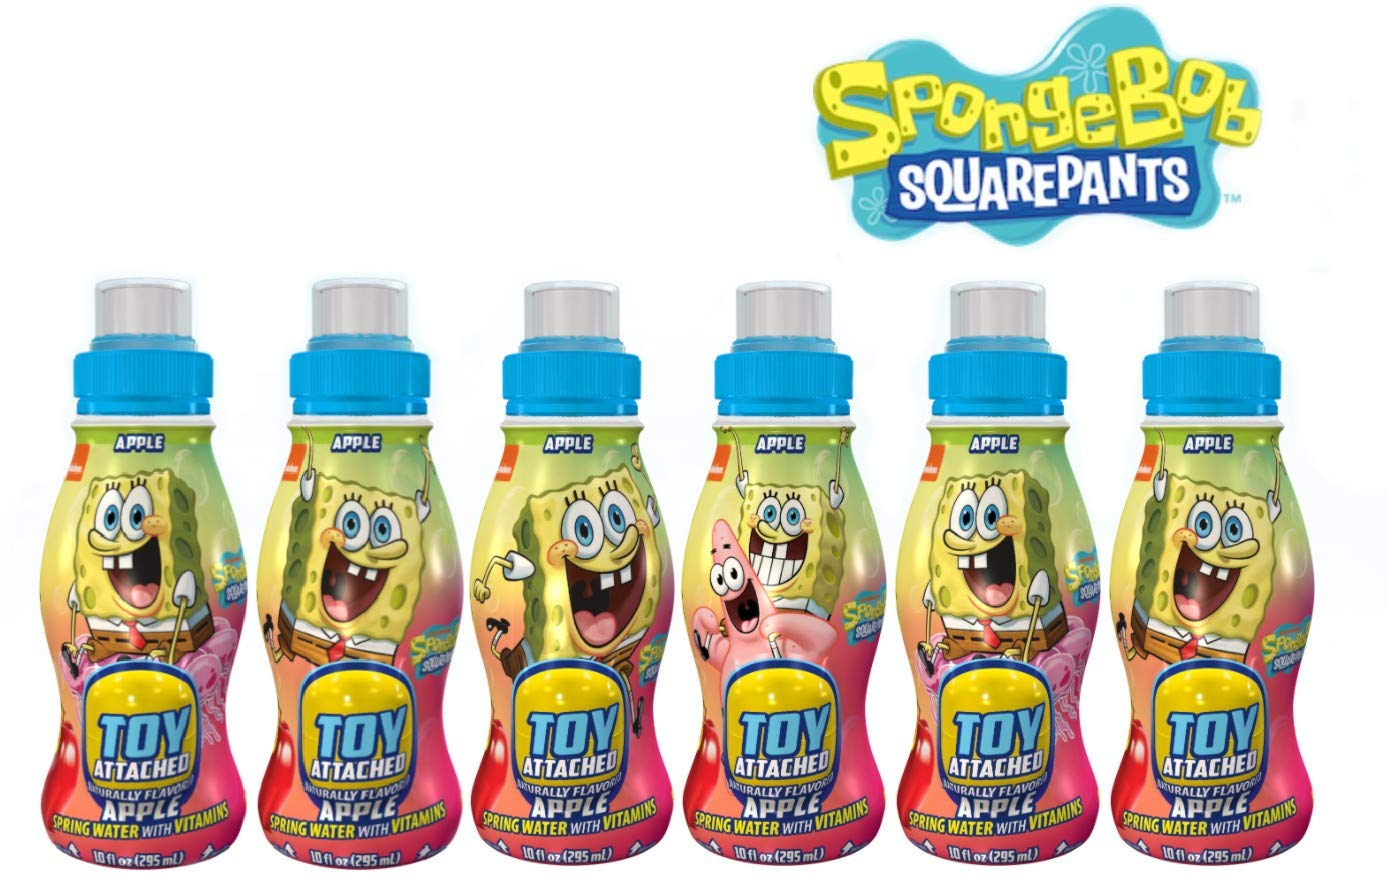 Surprise Drinks, Drink & Play Sponge Bob Square Pants Apple 6 Pack - Naturally Flavored Spring Water With Vitamins | 10oz, 6 Bottles And Collectible Surprise